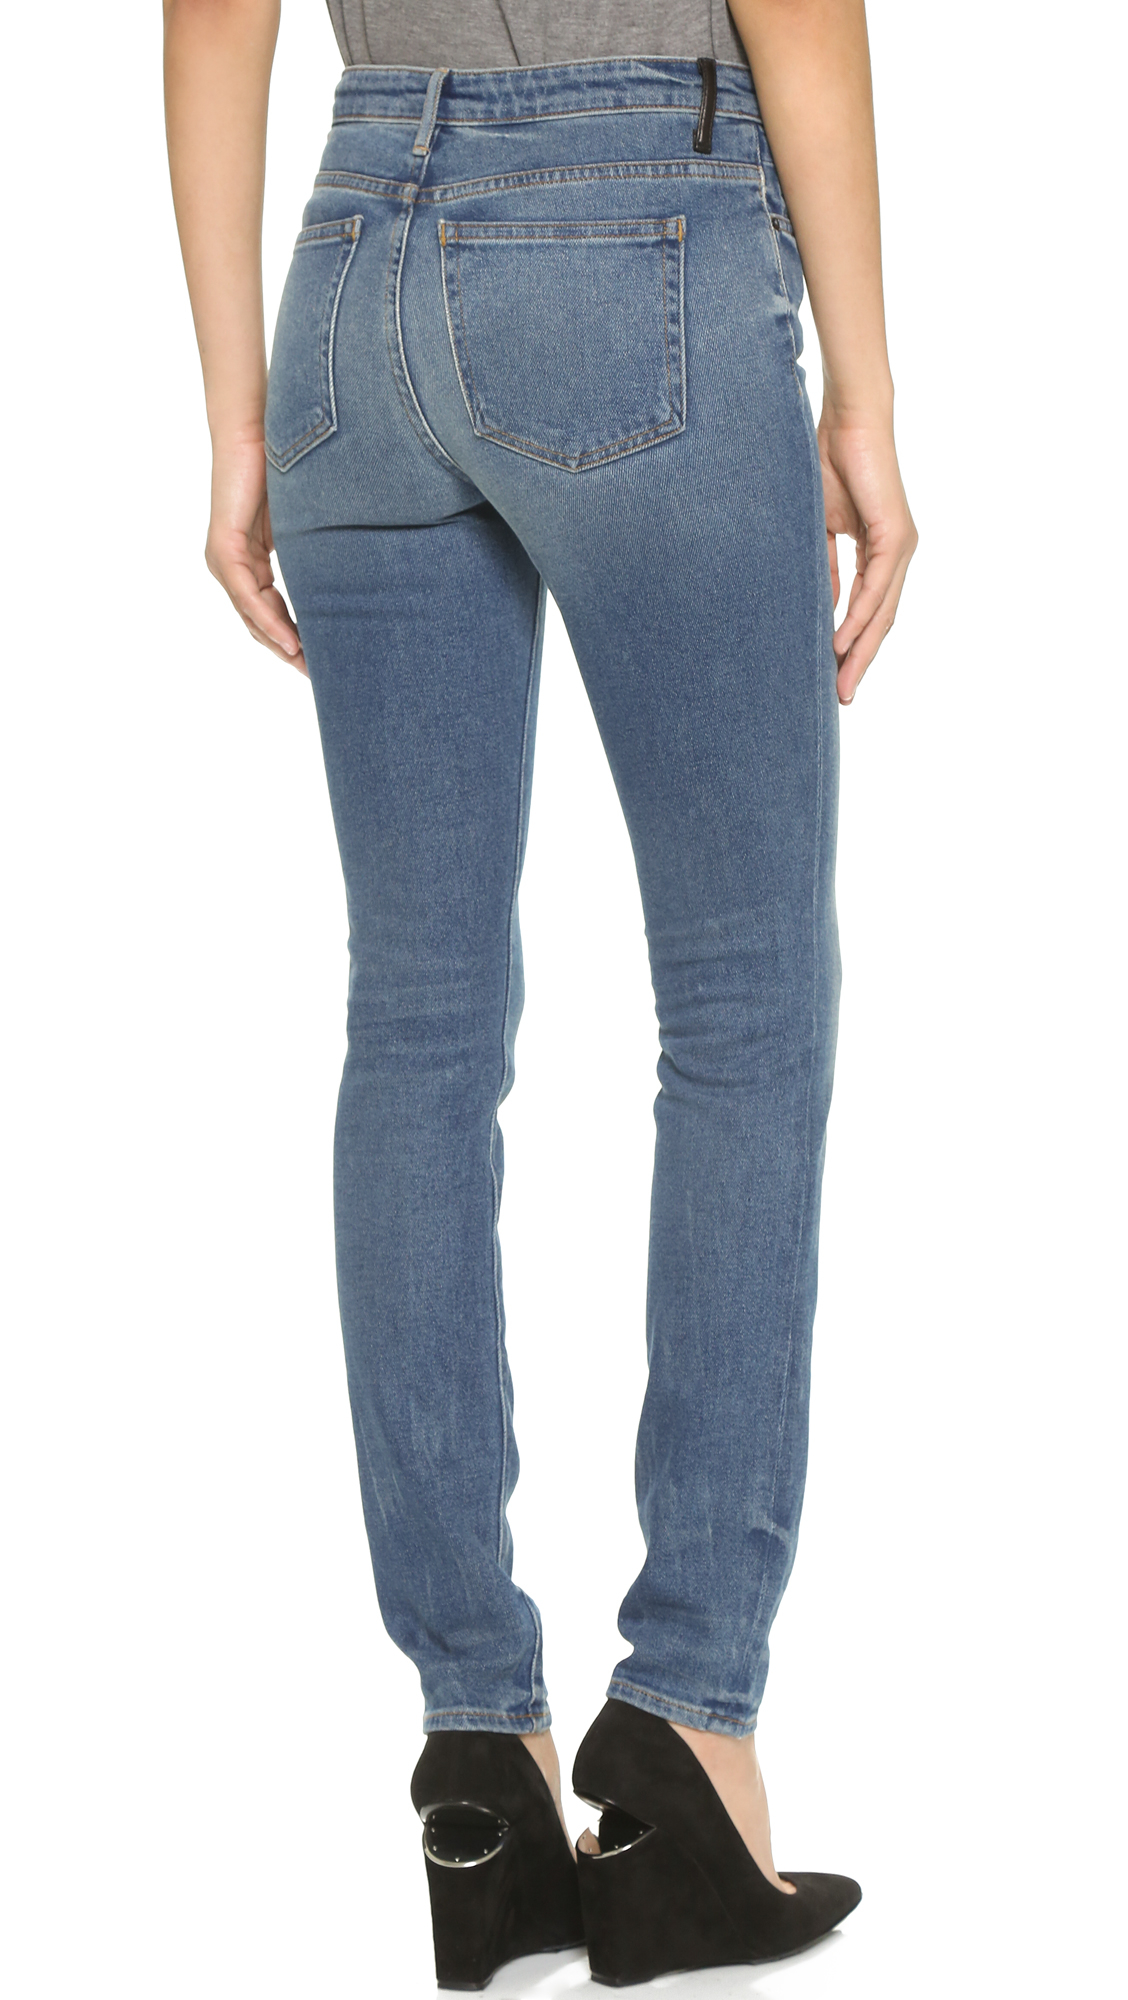 d92bc845c298 Lyst - Alexander Wang 001 Slim Fit High Rise Jeans in Blue